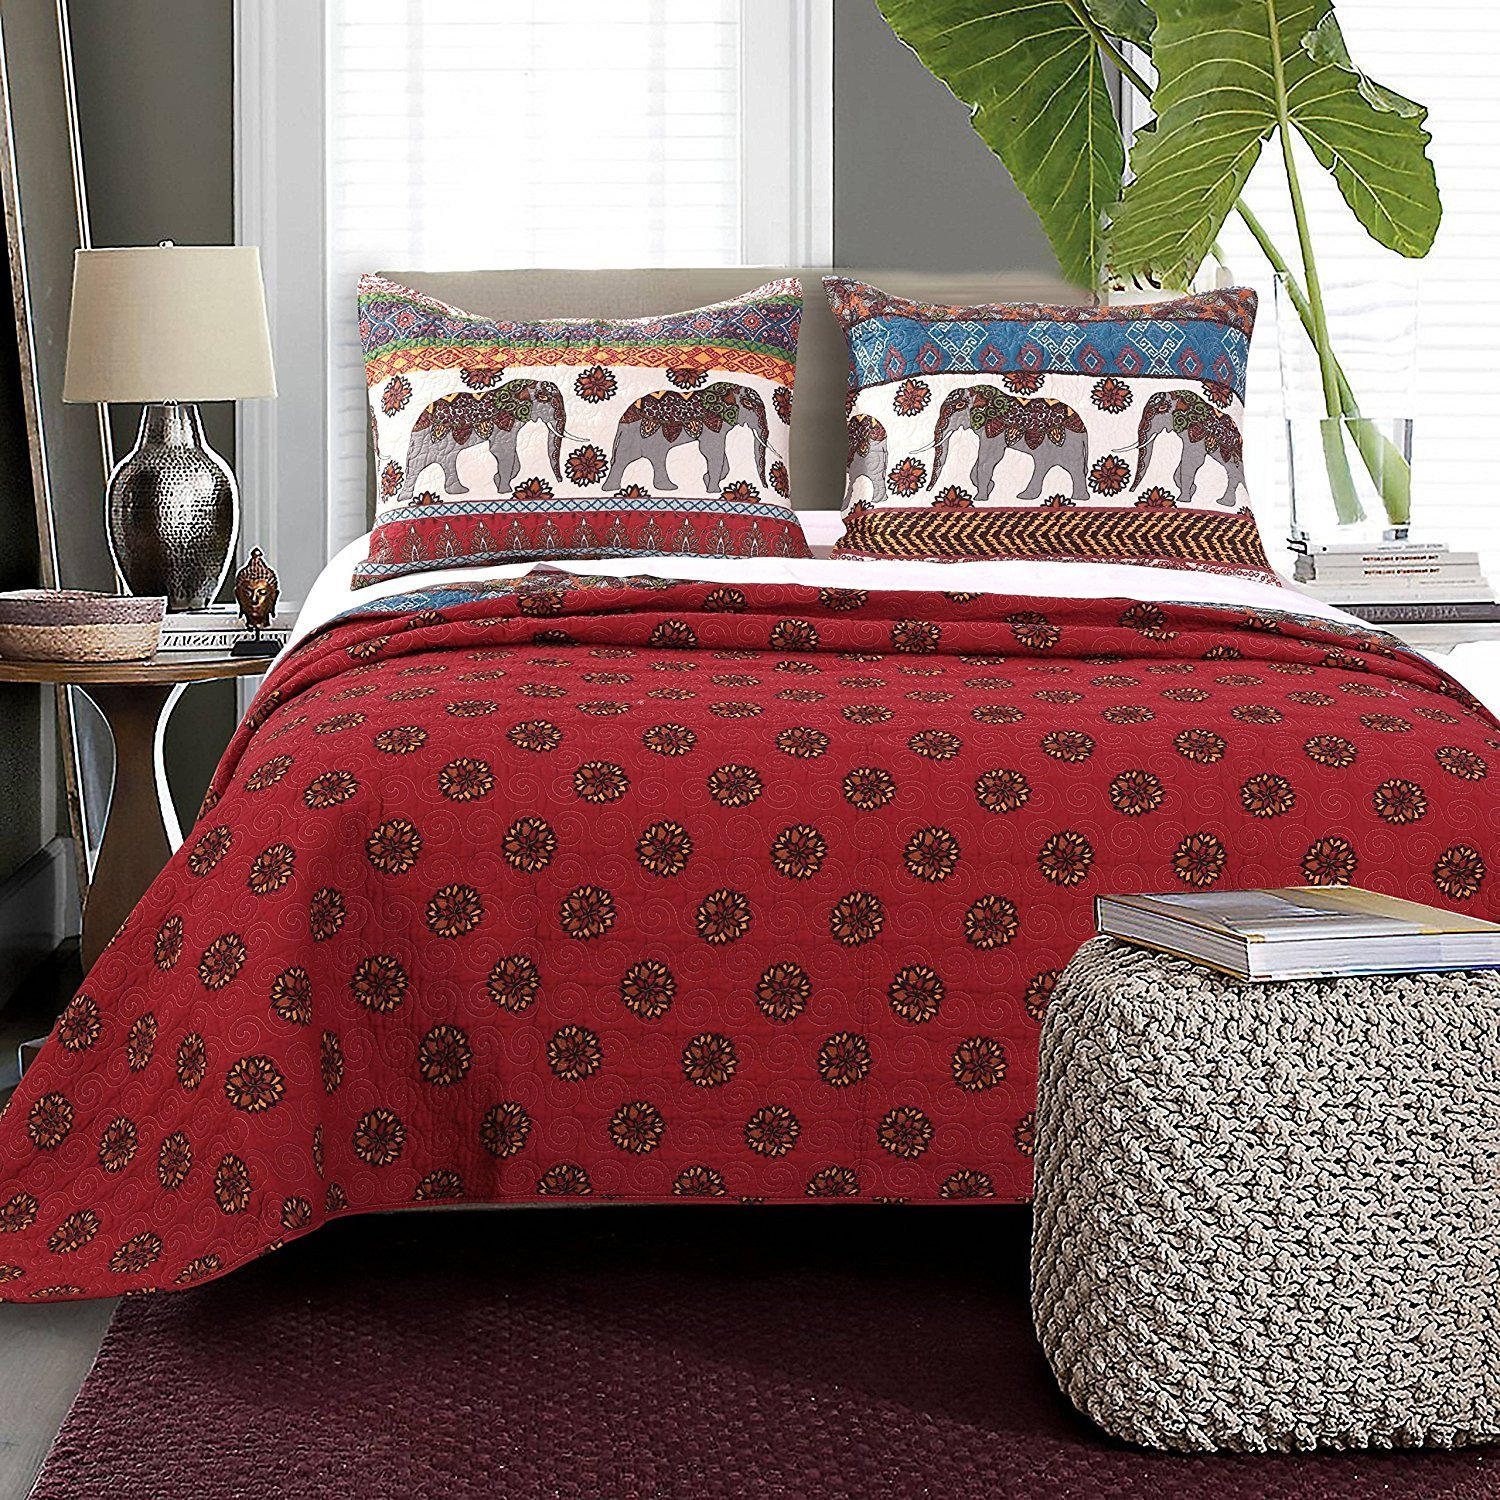 2pc Stunning Grey Red Blue White Twin Quilt Set, Elephant Themed Bedding Zoo Animal Floral Trendy Chic Pretty Stylish Bohemian Boho Vibrant, Cotton, Microfiber, Polyester